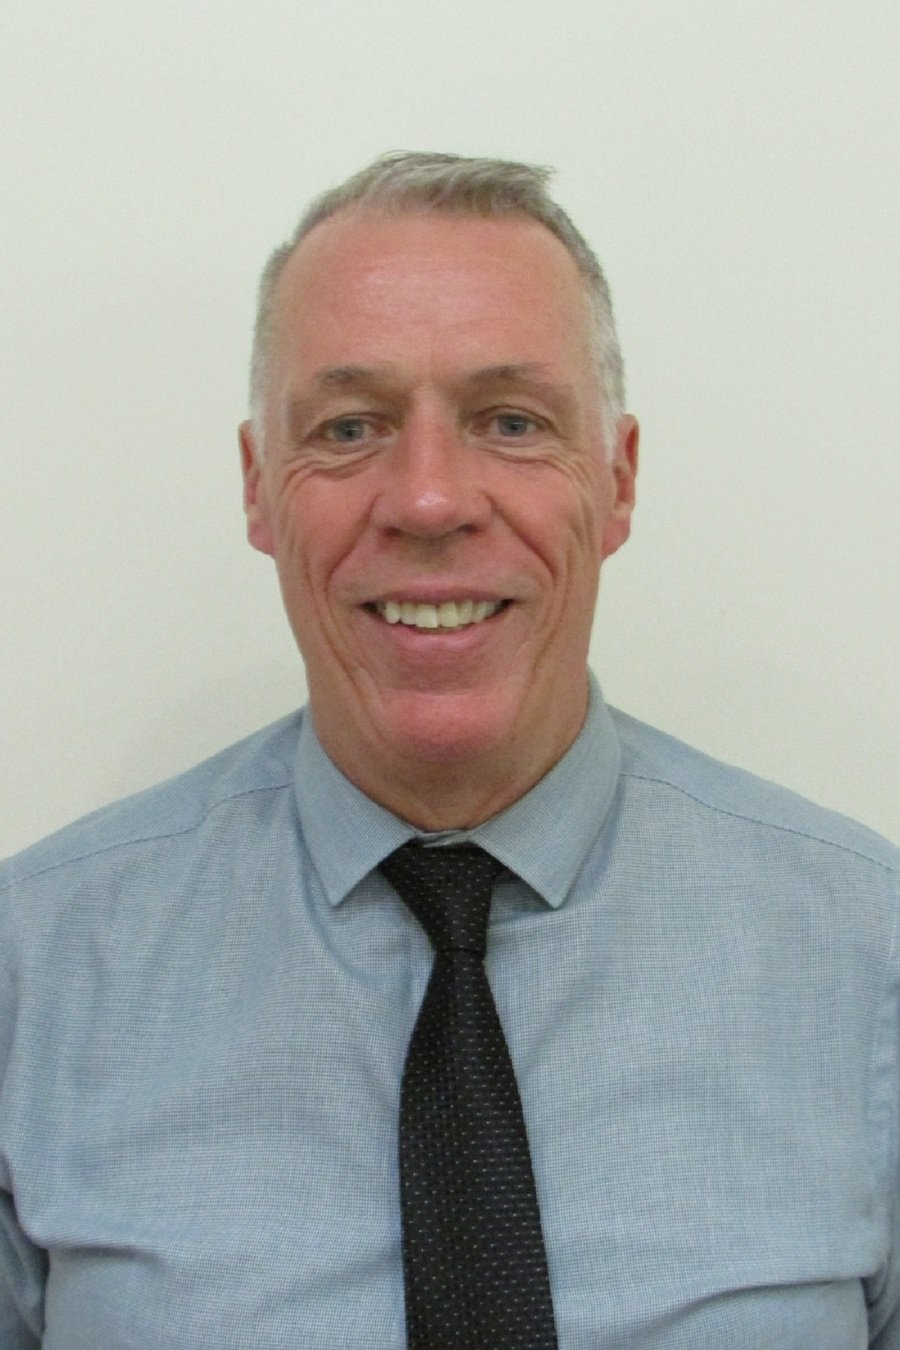 Michael Young - Site Manager